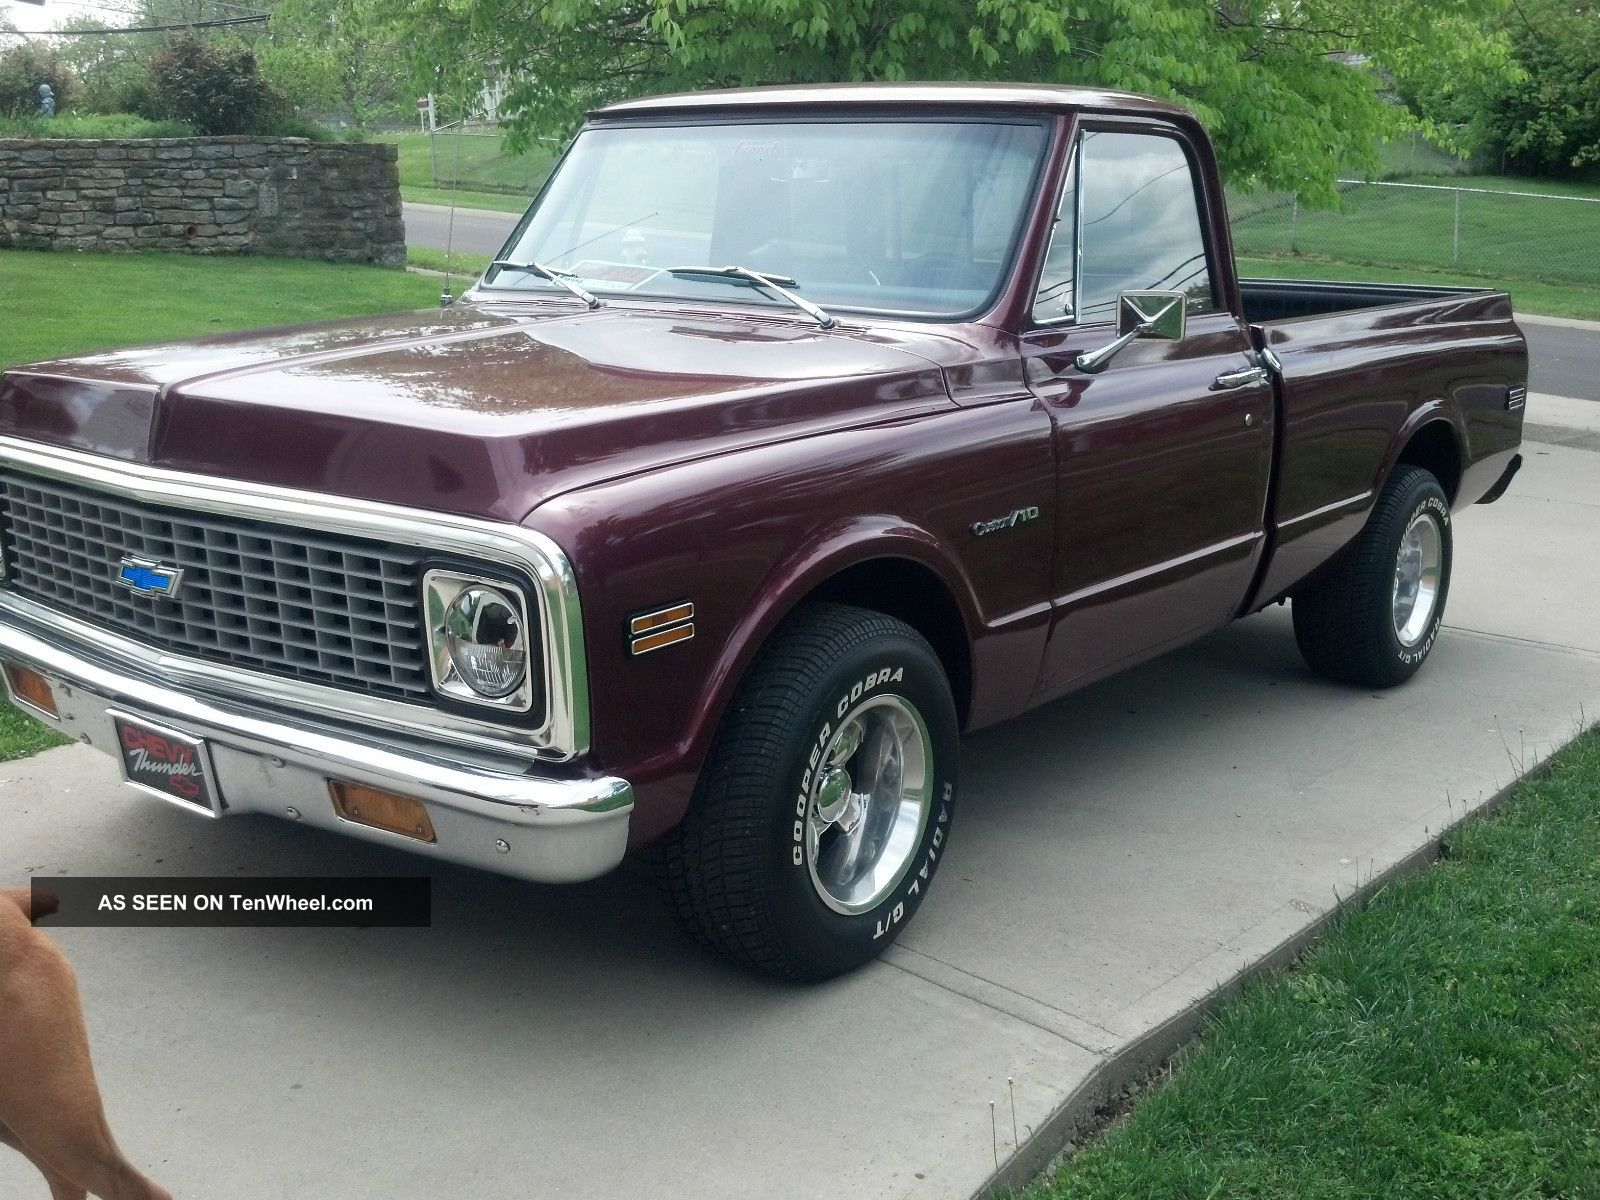 1970 Chevrolet C10 Swb Pickup Truck Sell Or Trade